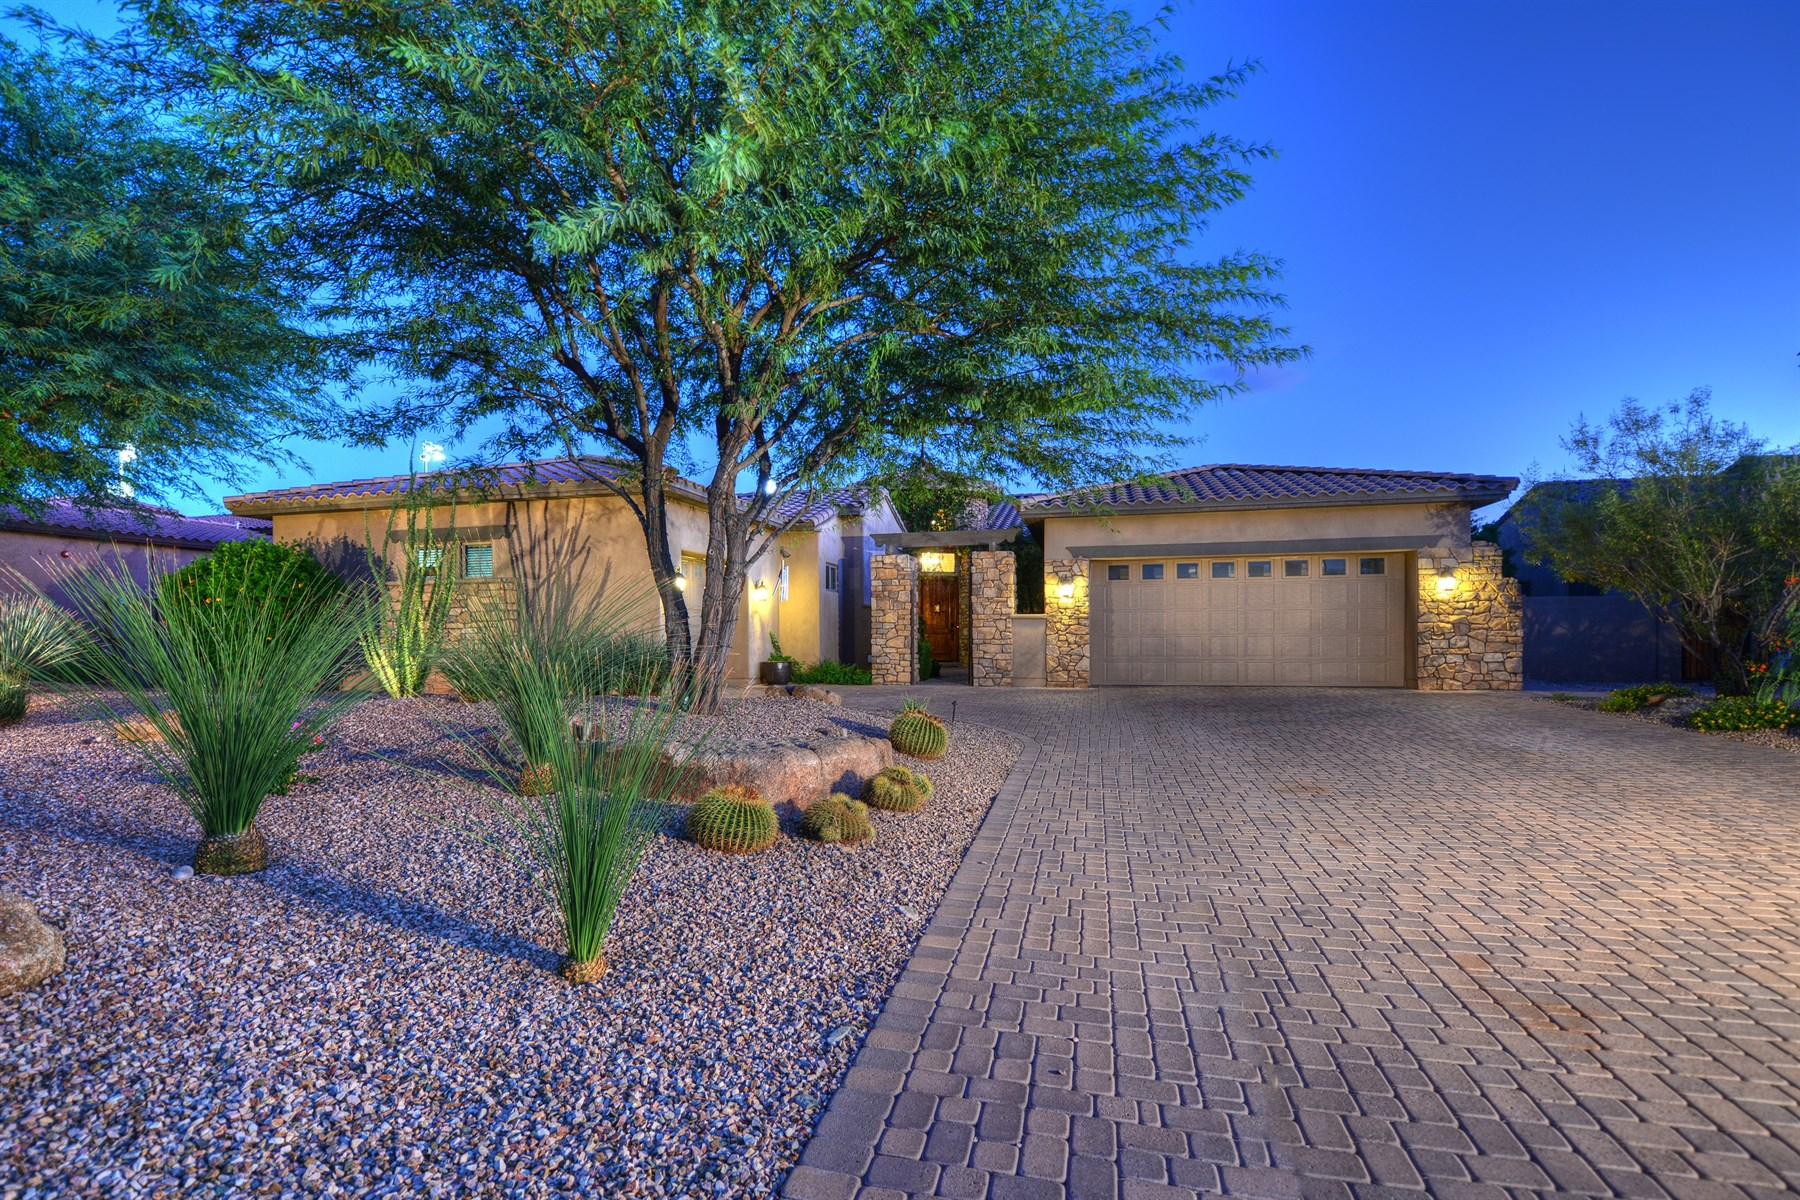 Single Family Home for Sale at Executive Family Home Located In The Gated Scottsdale Community Of Madrid 9979 E Celtic Drive Scottsdale, Arizona 85260 United States